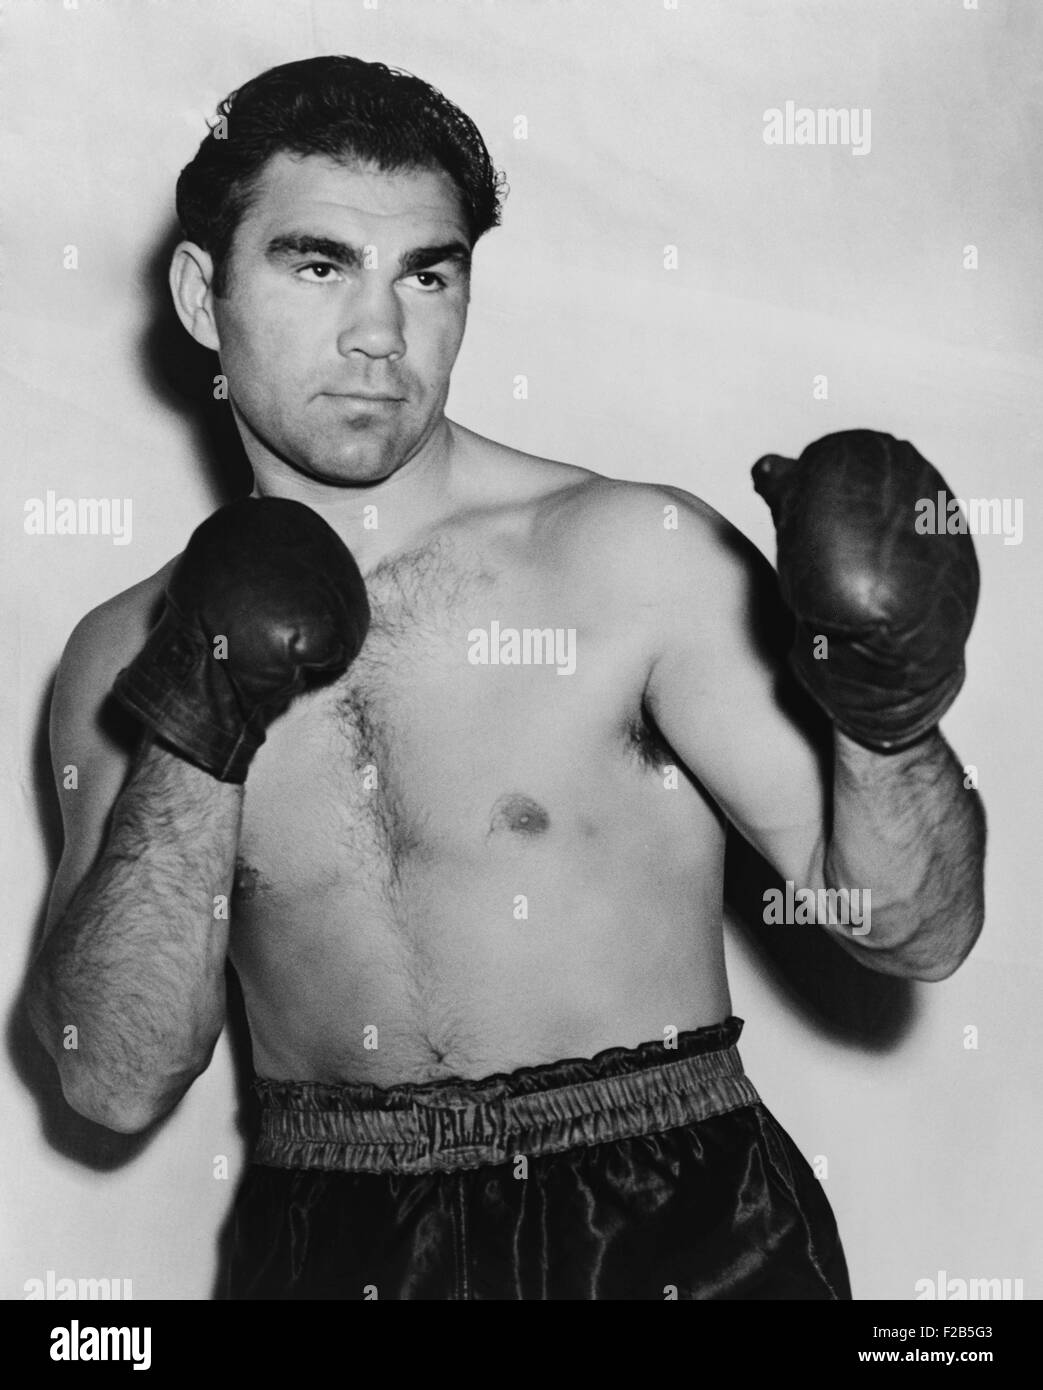 German boxer Max Schmeling in a boxing pose in 1938. On June 22, 1938 he lost in a rematch with American Joe Louis. - Stock Image